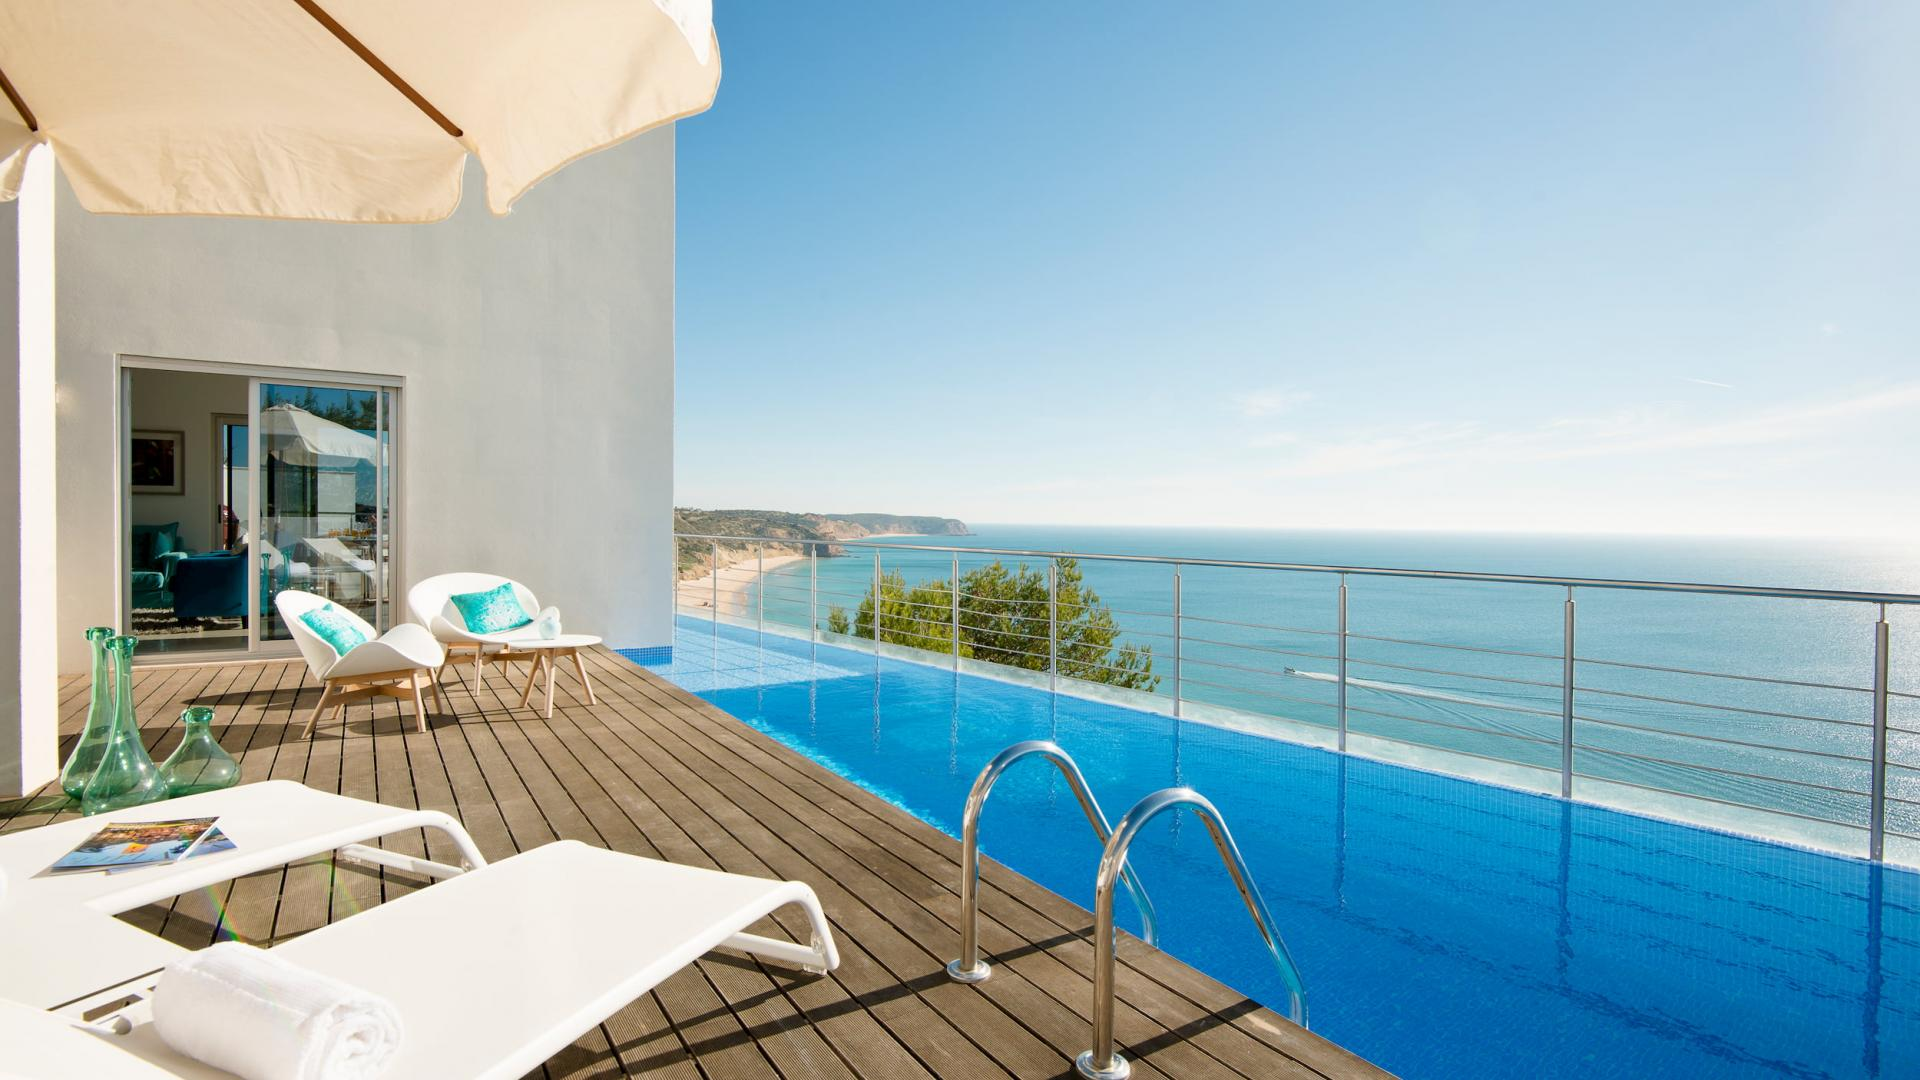 Villa Mar Azul - Plunge pool view 1